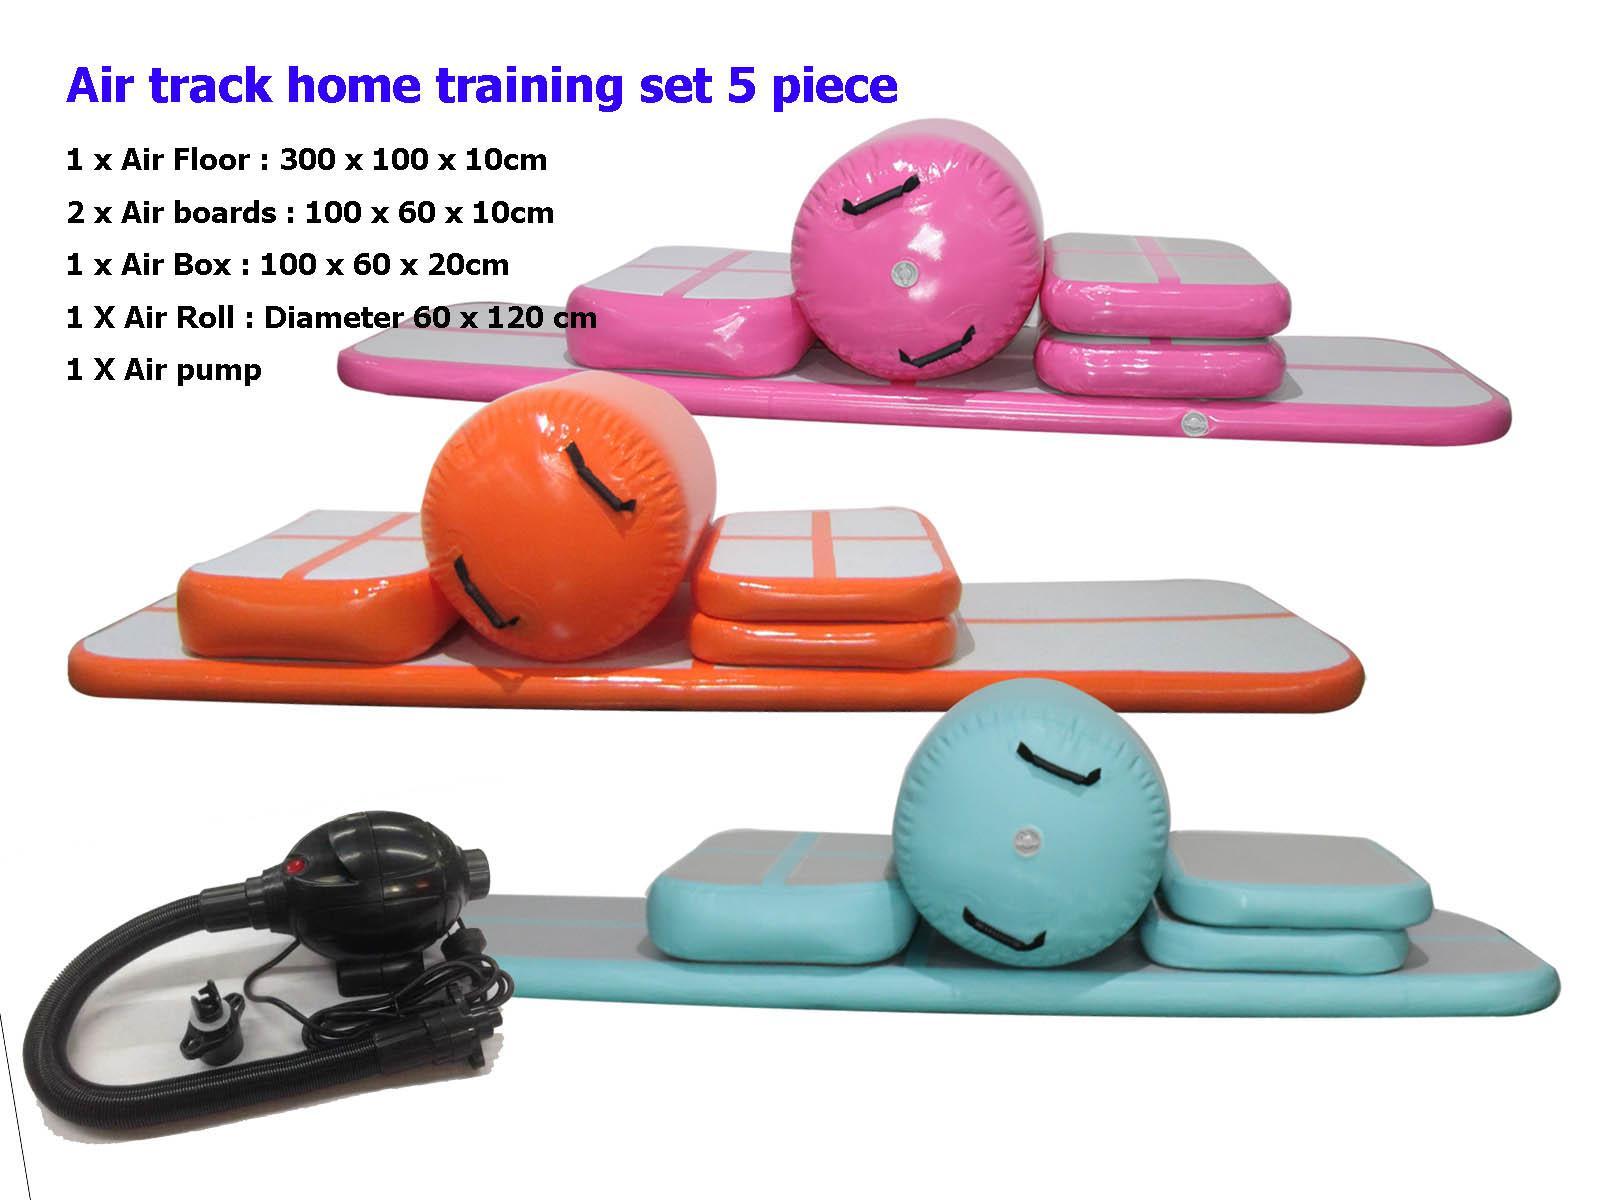 e61005caedf1 Free Shipping 6 Pieces (4 air track+1 roller+1 pump) Inflatable Tumbling  Mat Airtrack Training Set For Home gymnastics Air Track mat